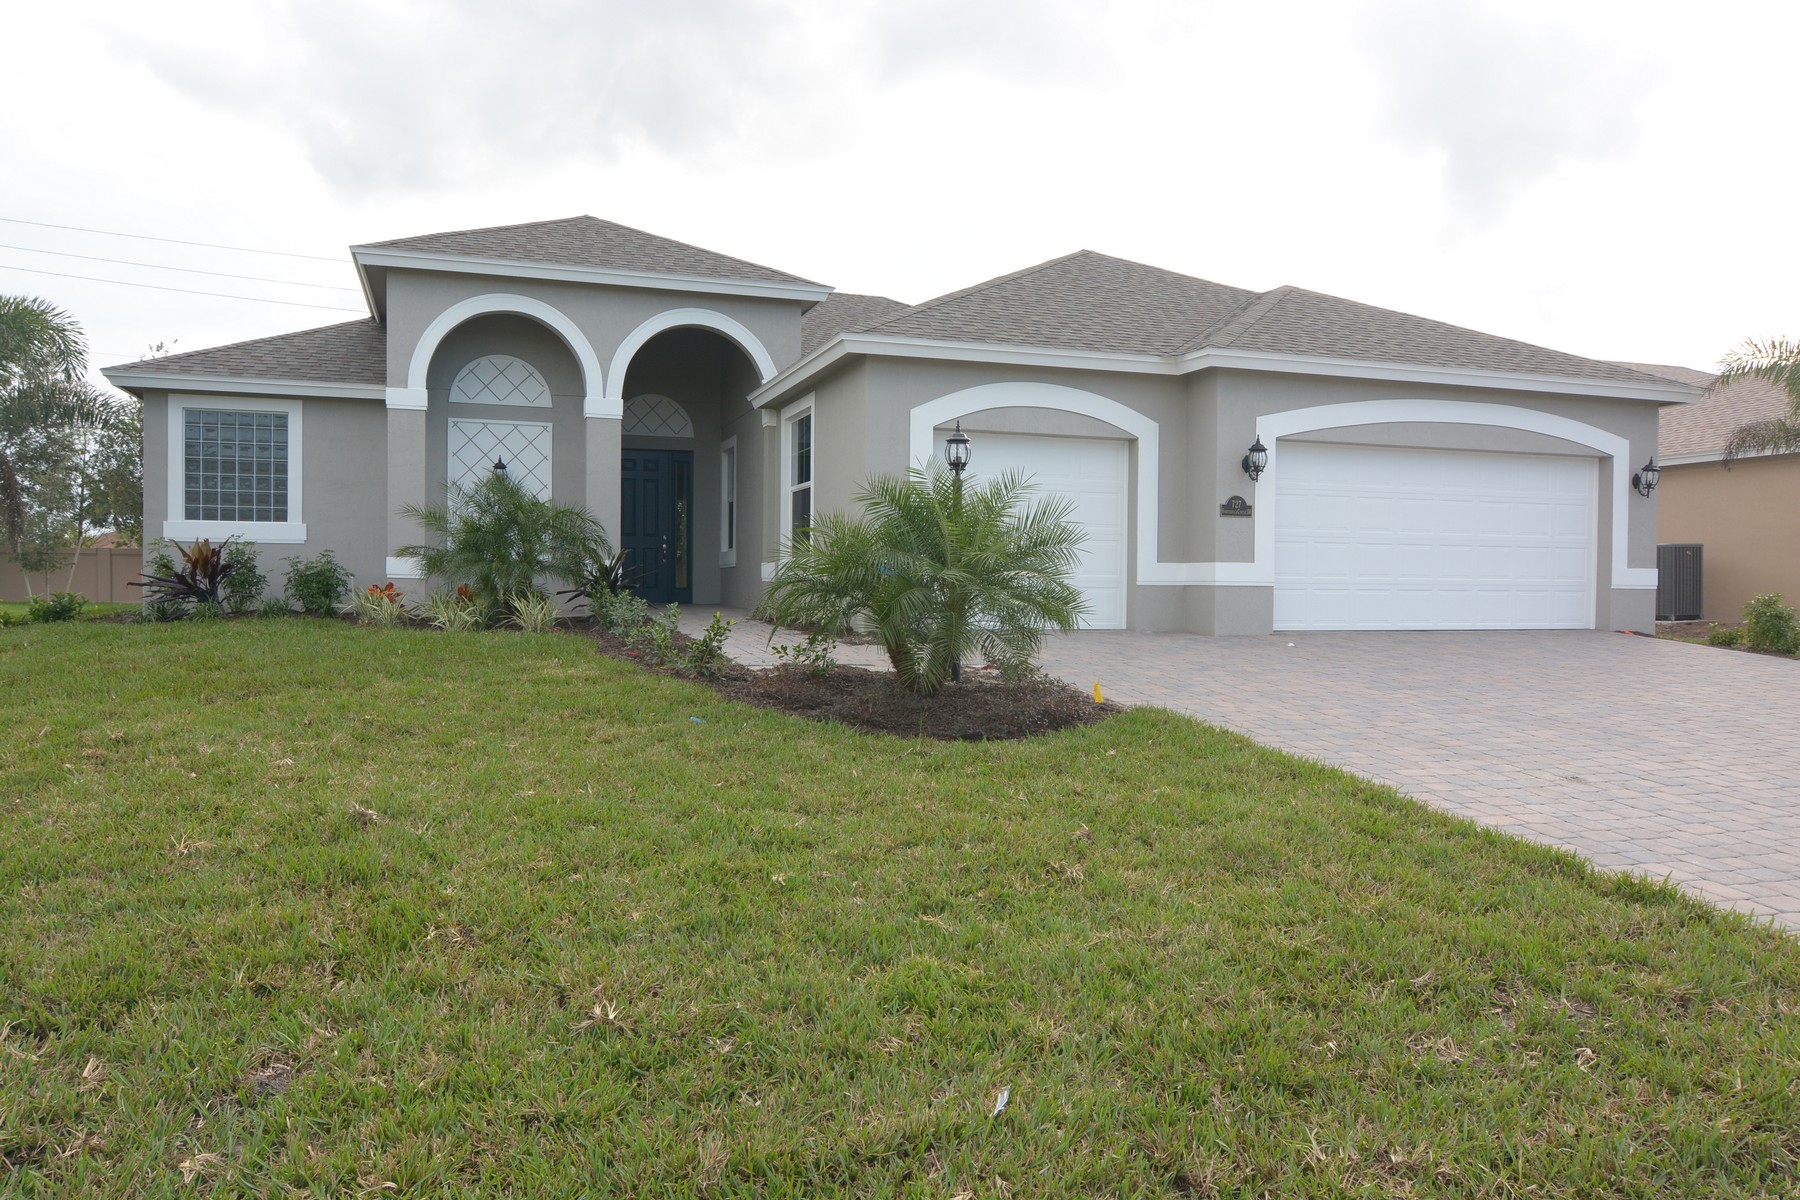 Single Family Home for Sale at Wonderful Home in Citrus Springs 727 Fortunella Circle Vero Beach, Florida 32968 United States